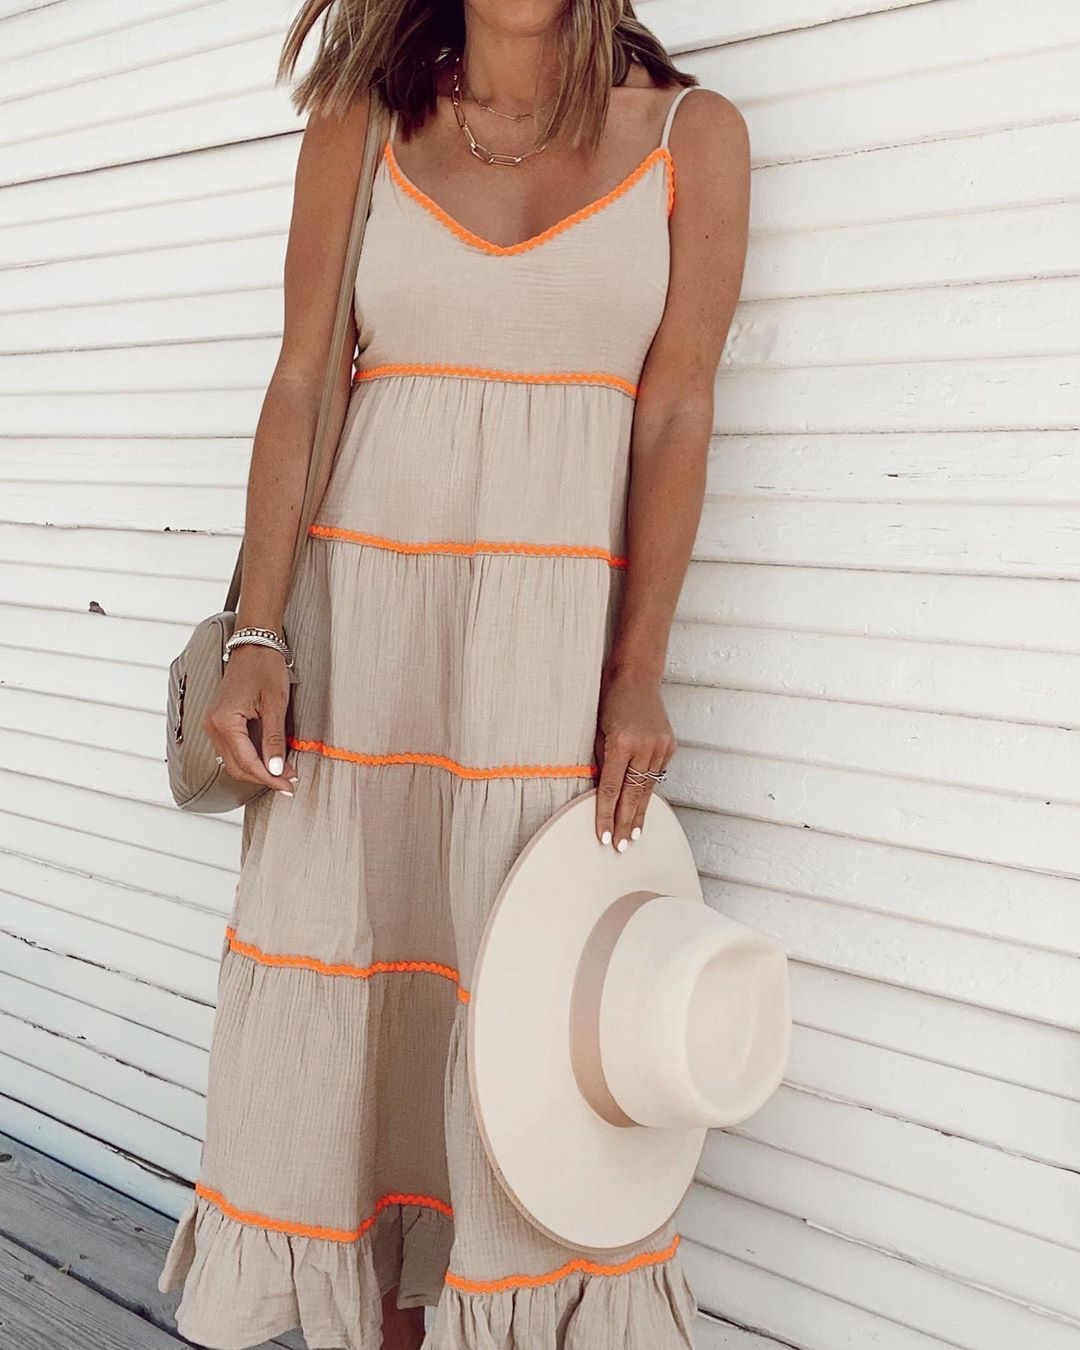 Affordable Summer Maxi Dress From Walmart Summer Maxi Long Summer Dresses Maxi Dresses [ 1350 x 1080 Pixel ]